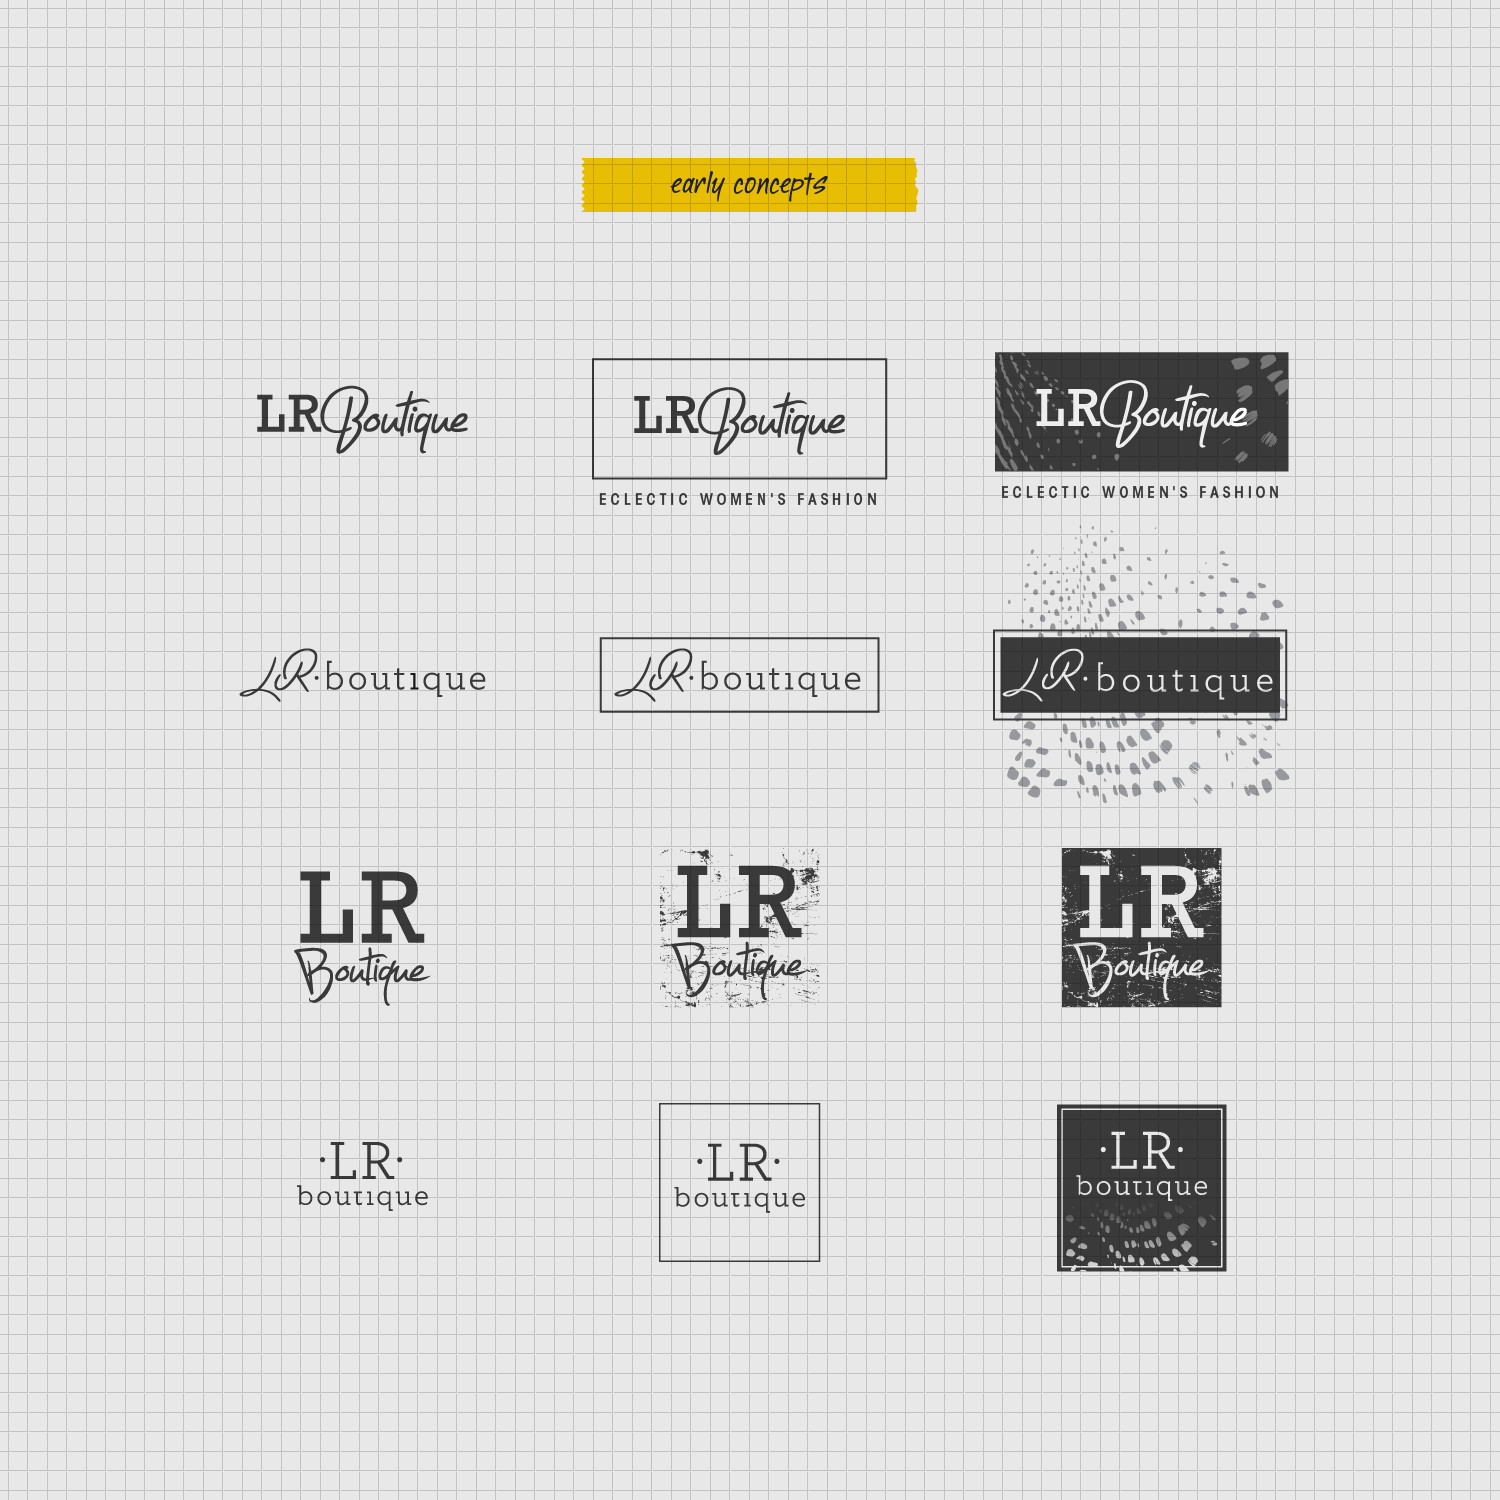 LR Boutique early logo concepts